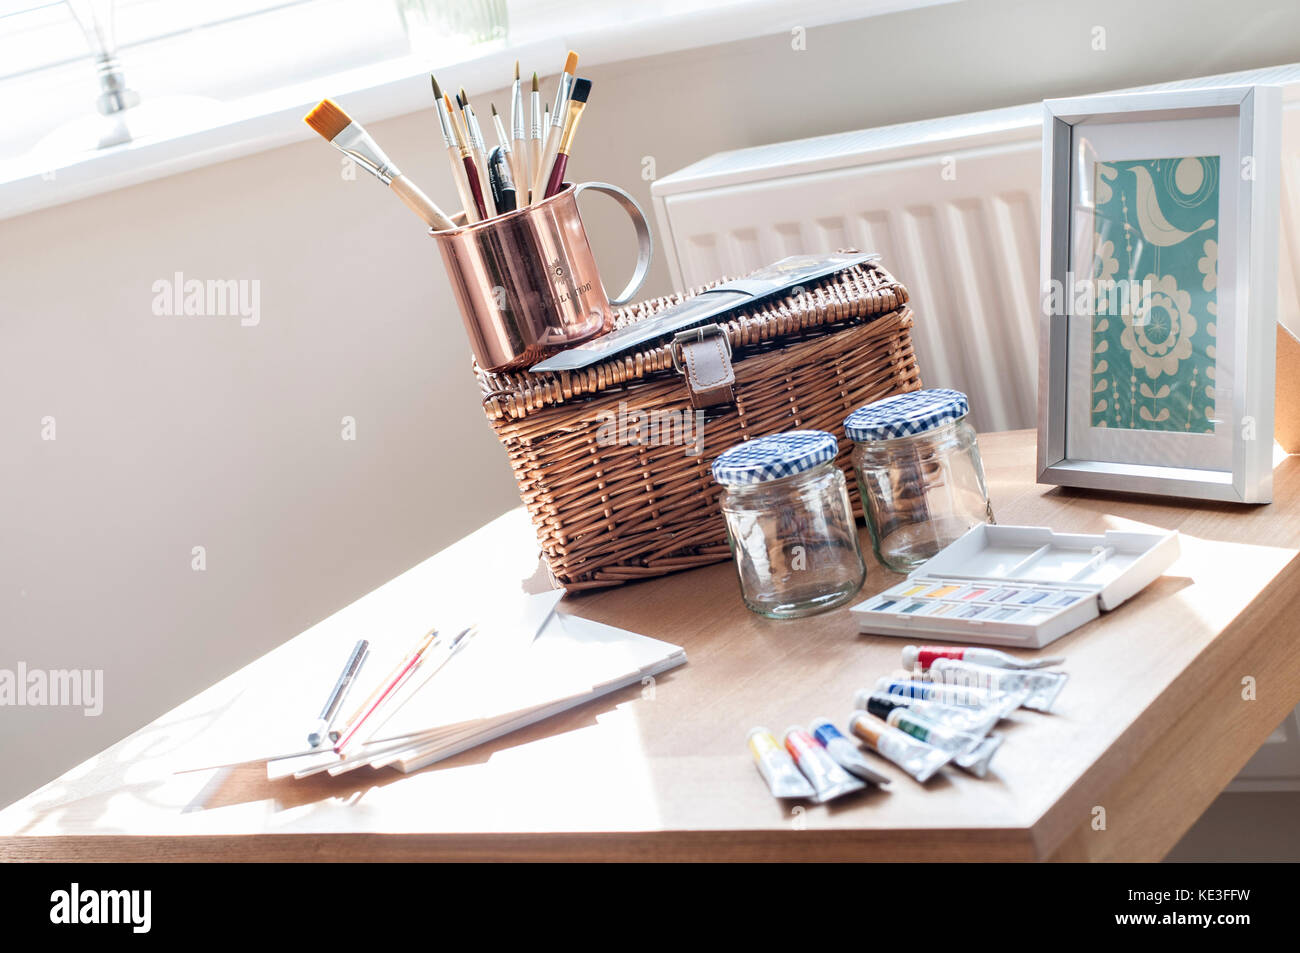 small crafting table in living space - Stock Image